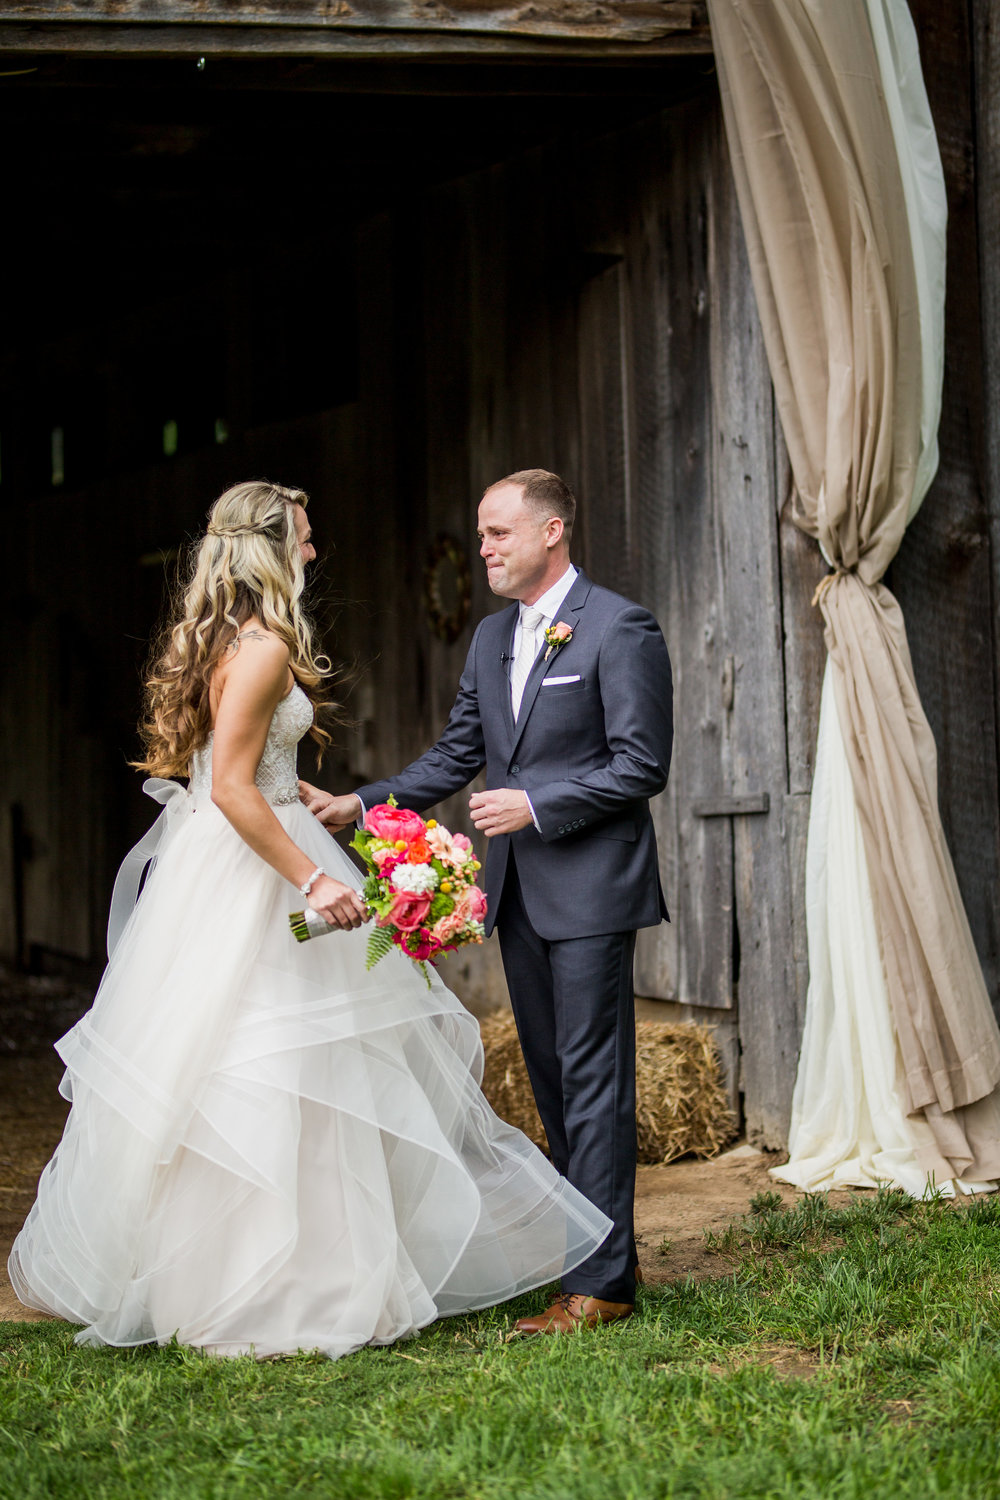 Nashville Wedding Photographers Drakewood Farm-257.jpg